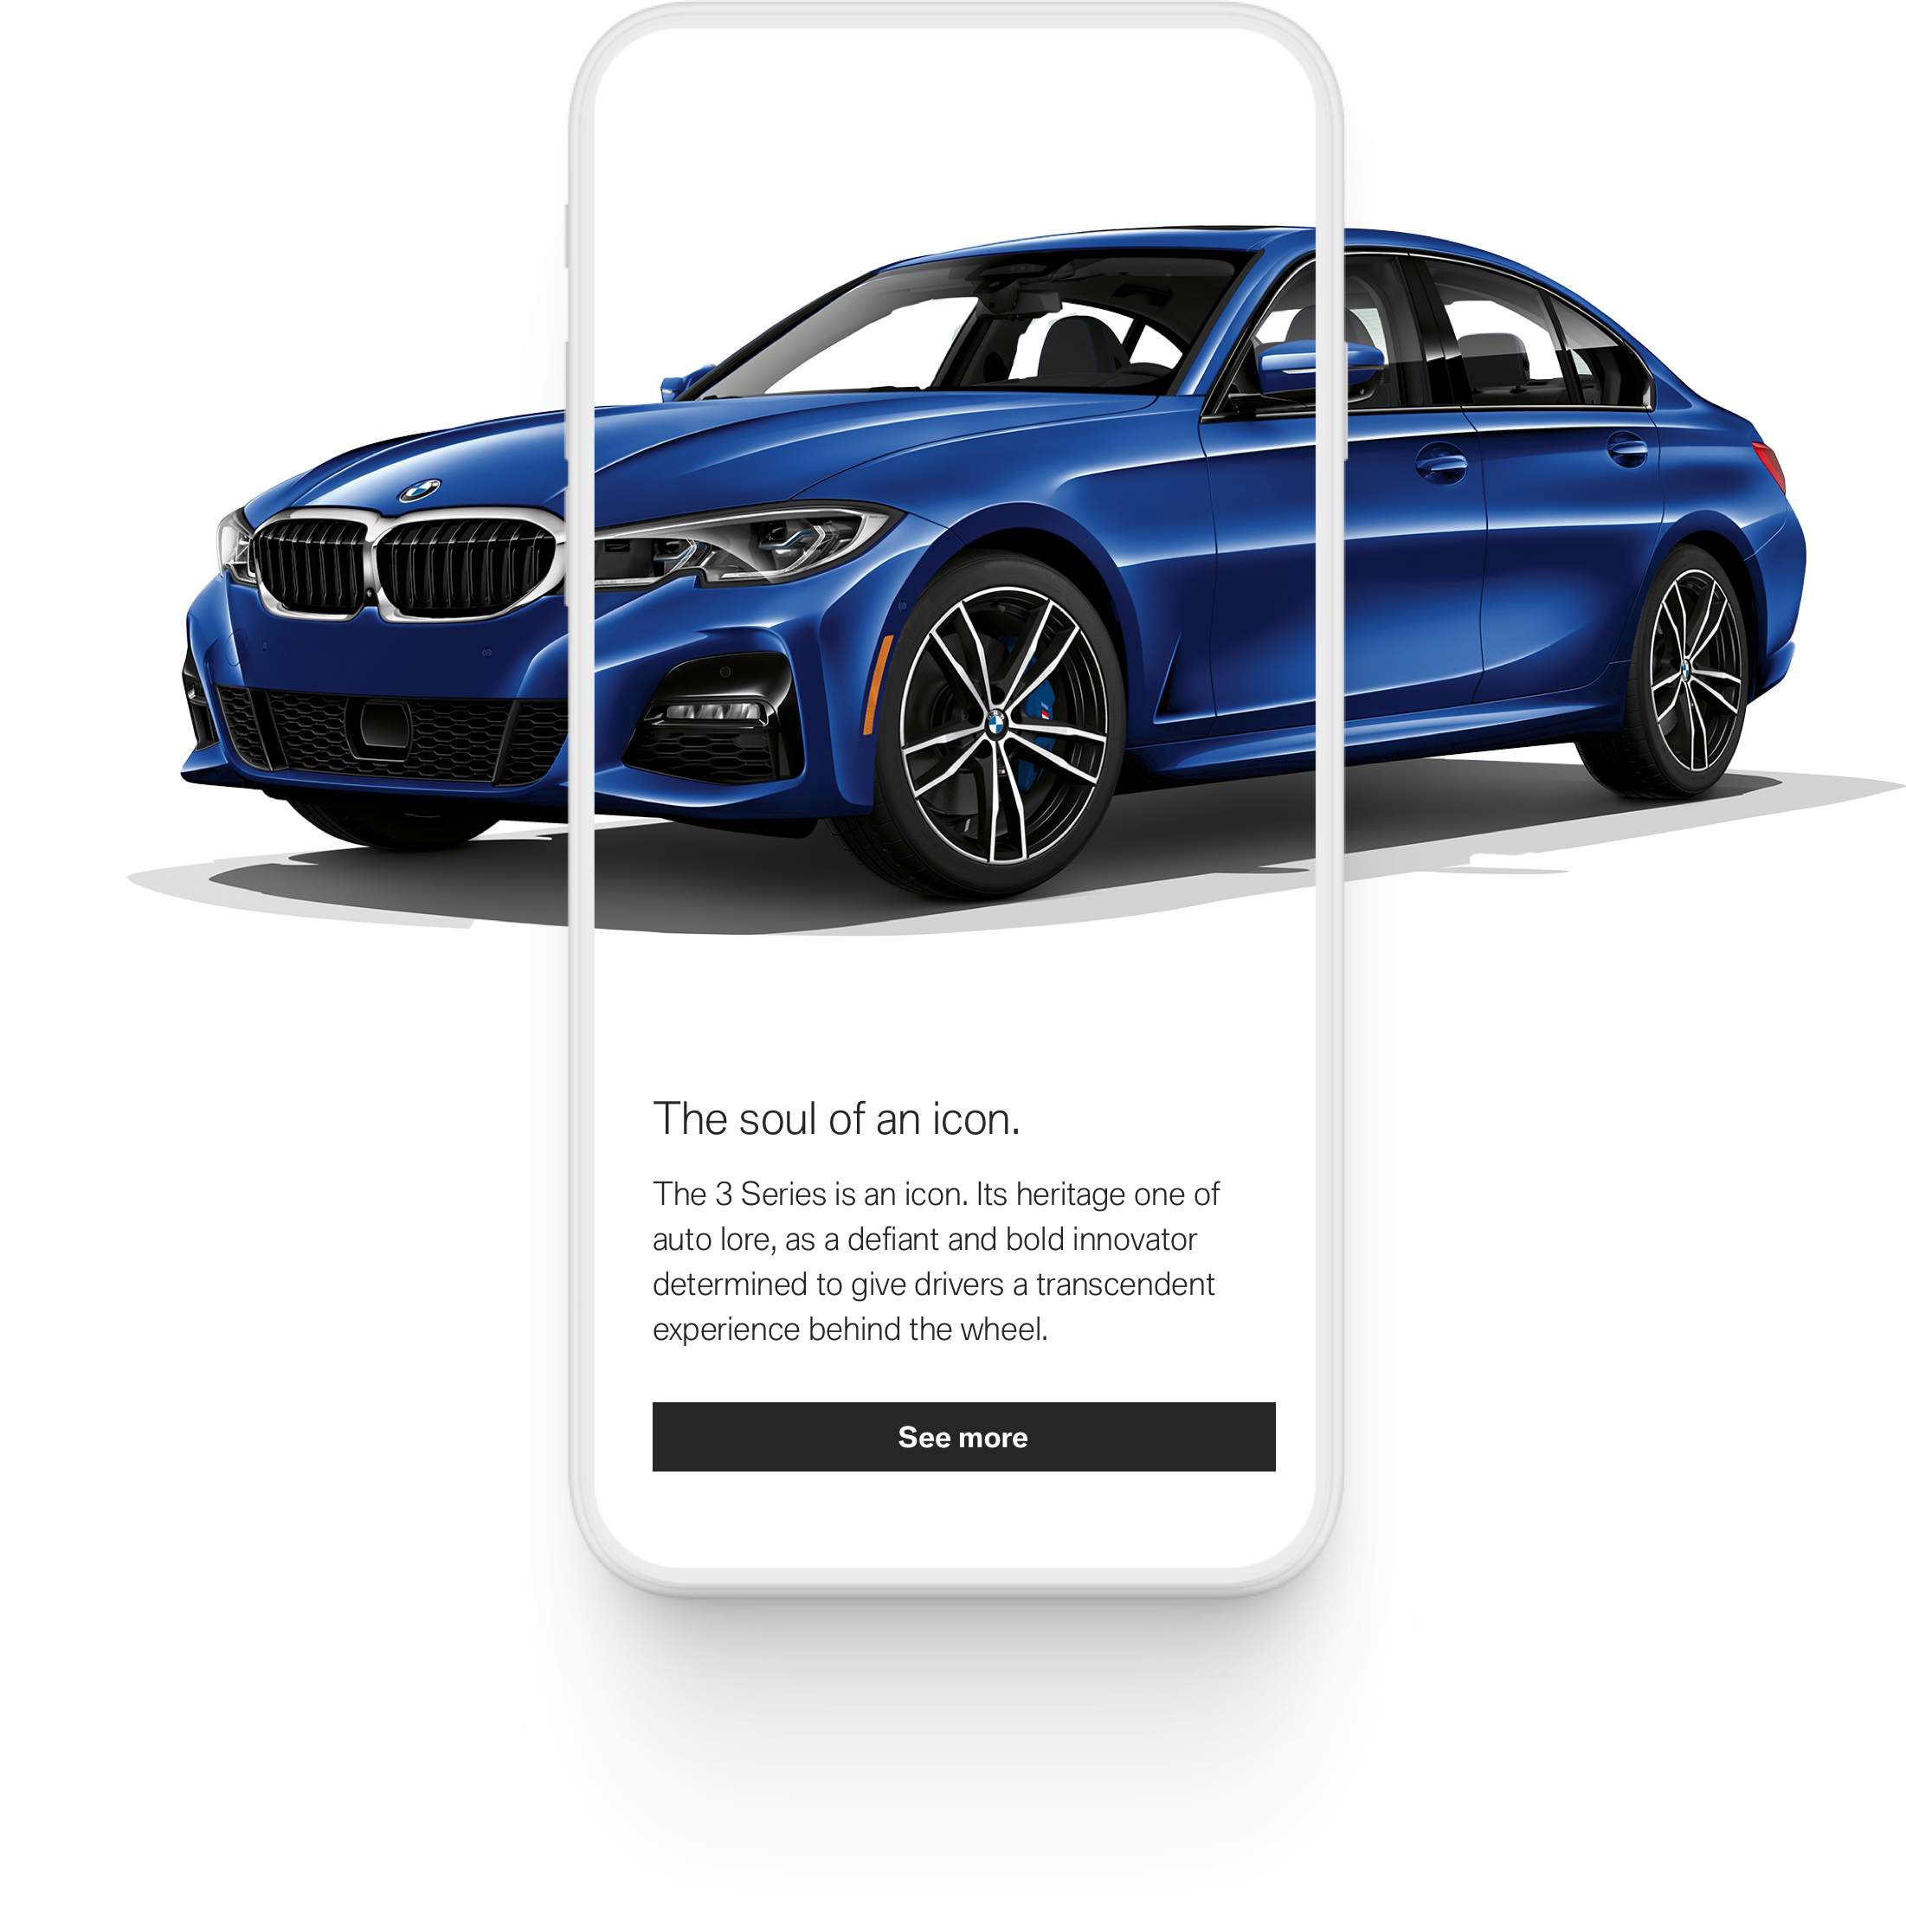 BMW_Email_03_00